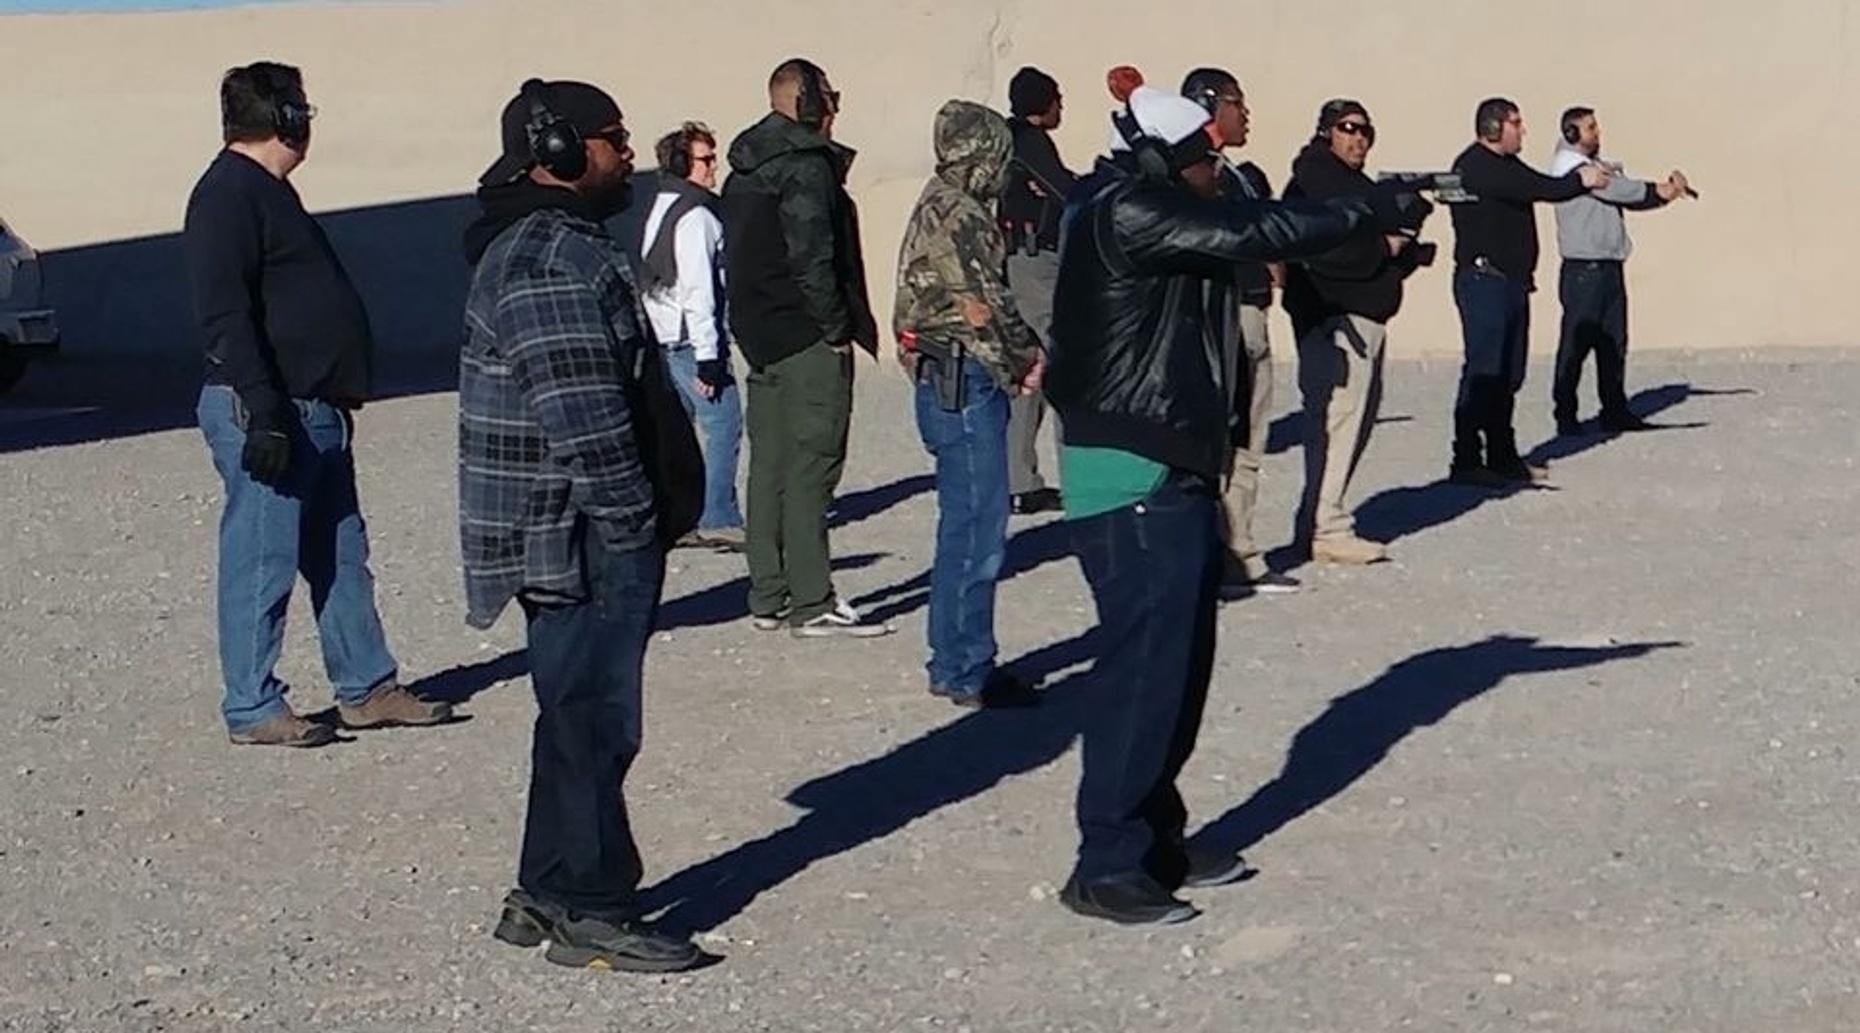 Carrying Concealed Weapon Class in Nevada